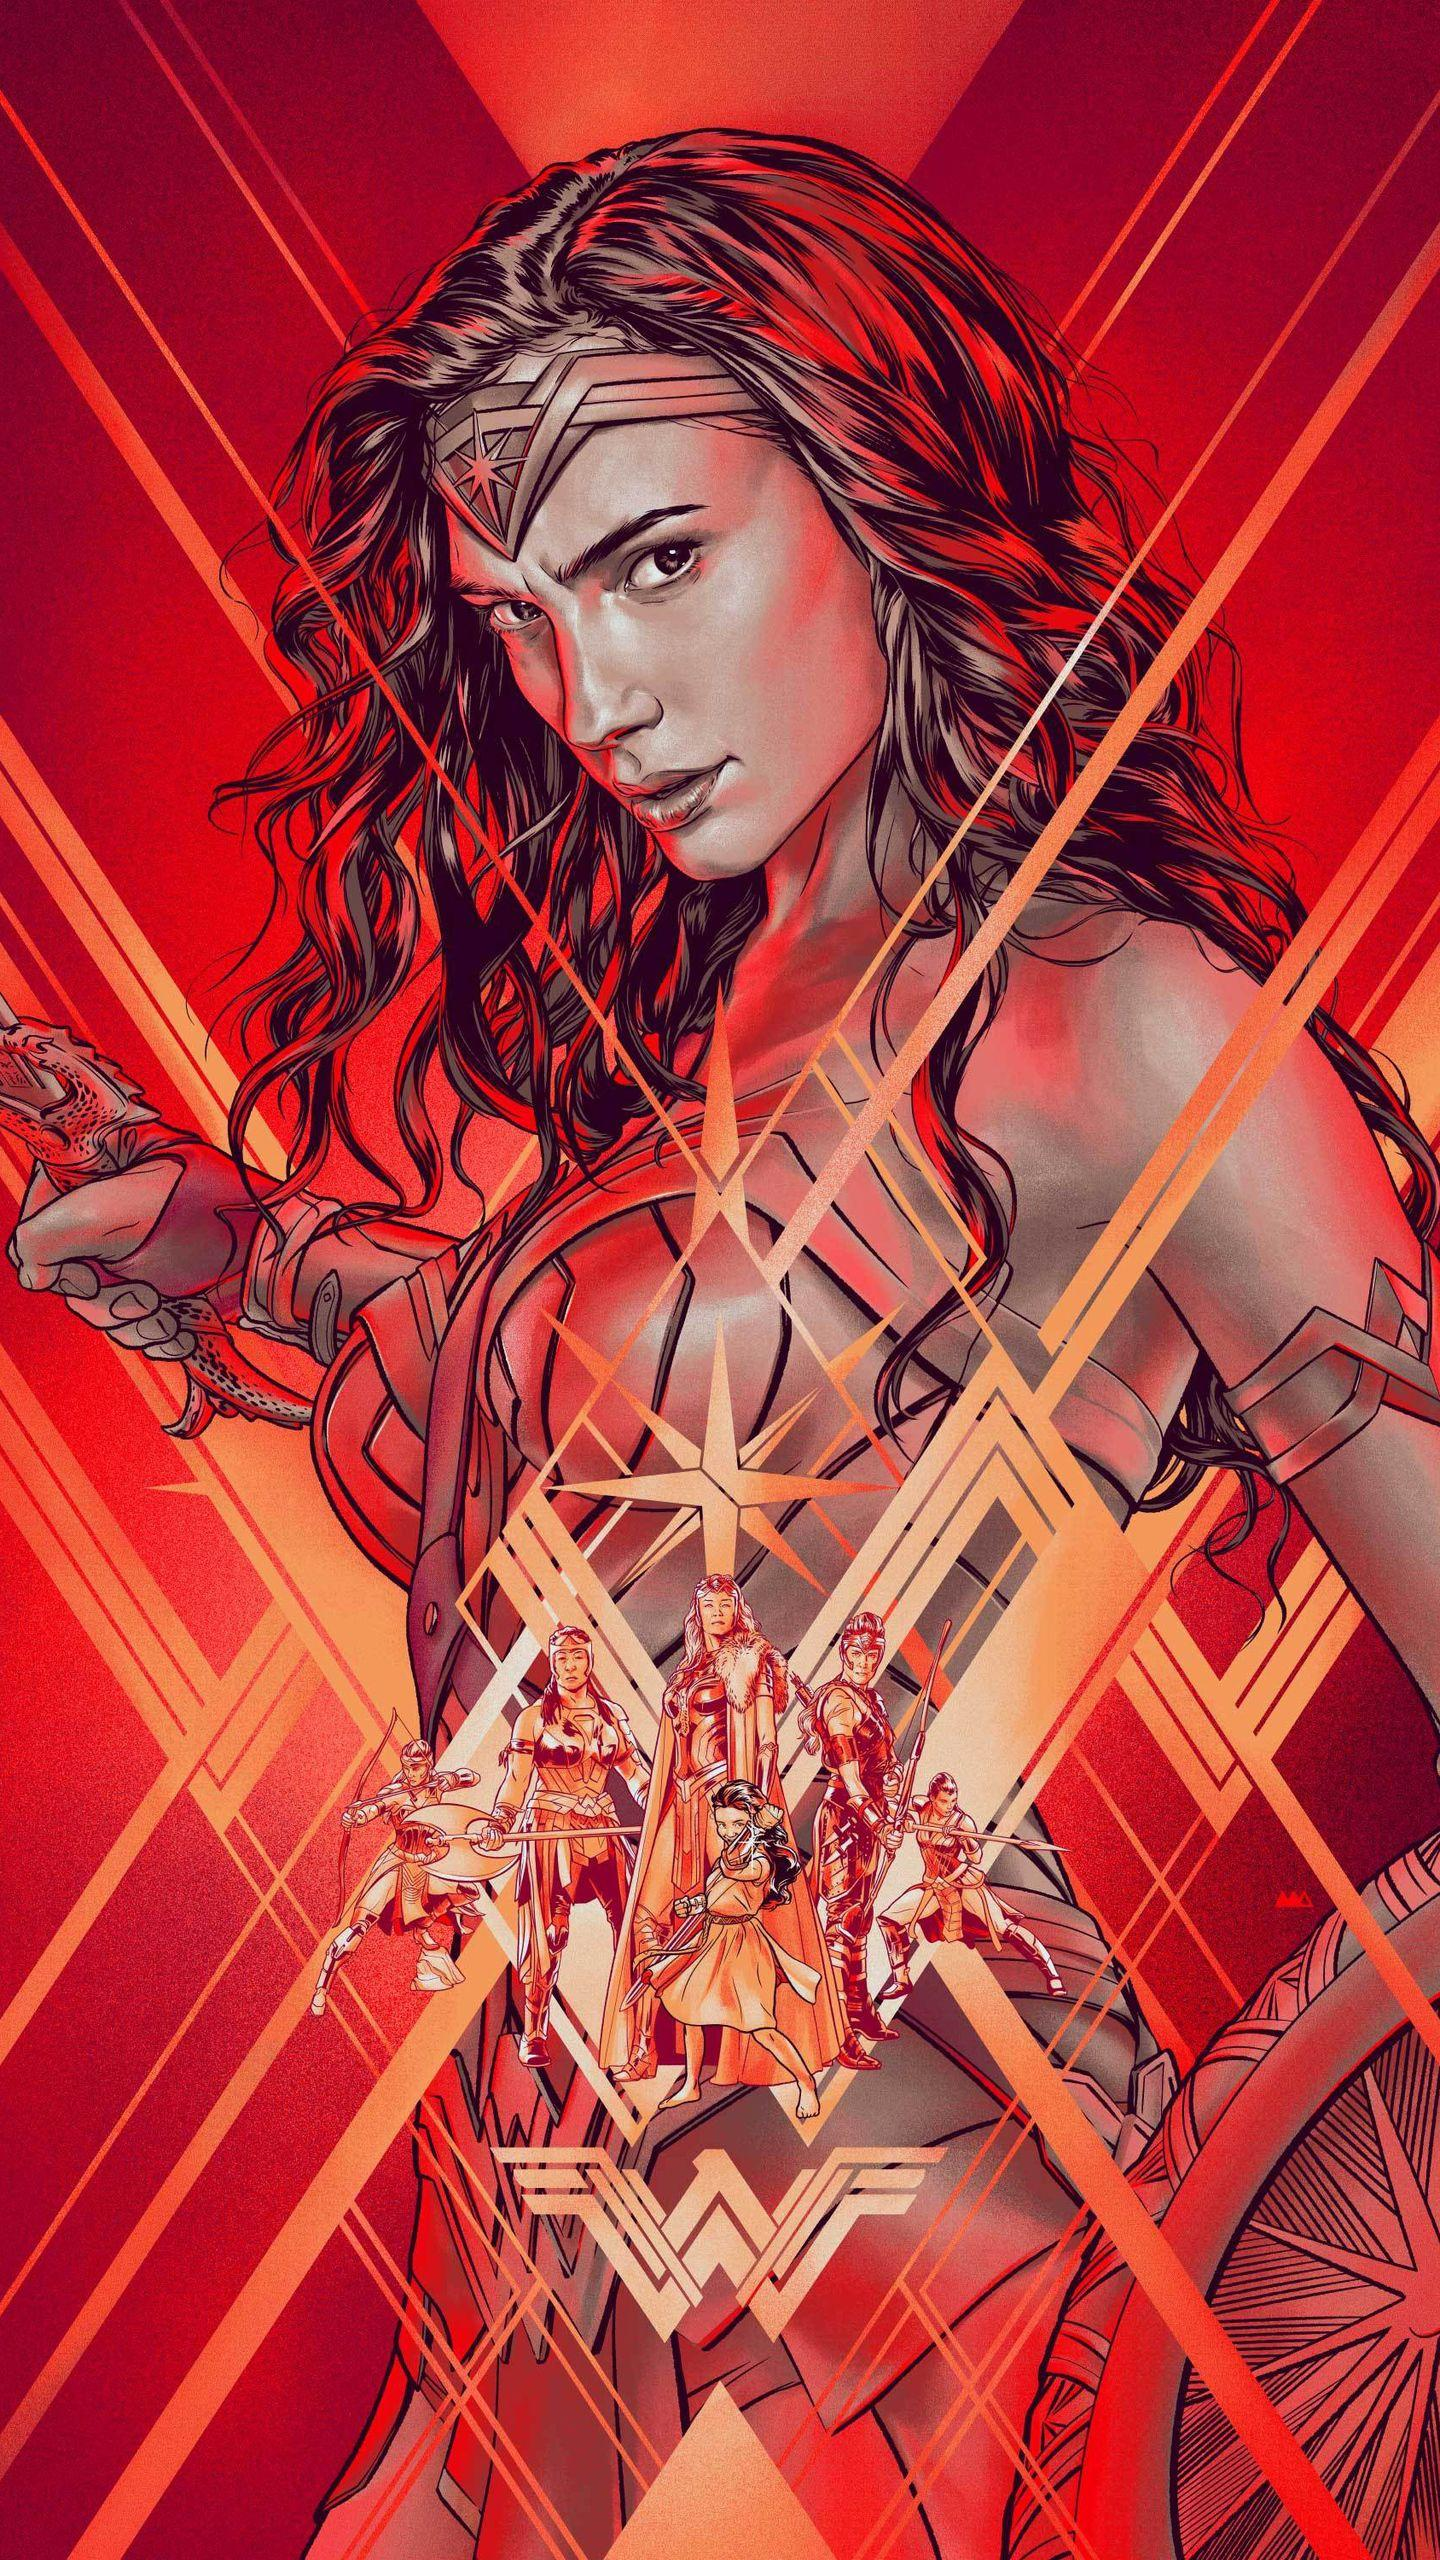 WONDER WOMAN 1984: EVERYTHING YOU NEED TO KNOW, Gal Gadot